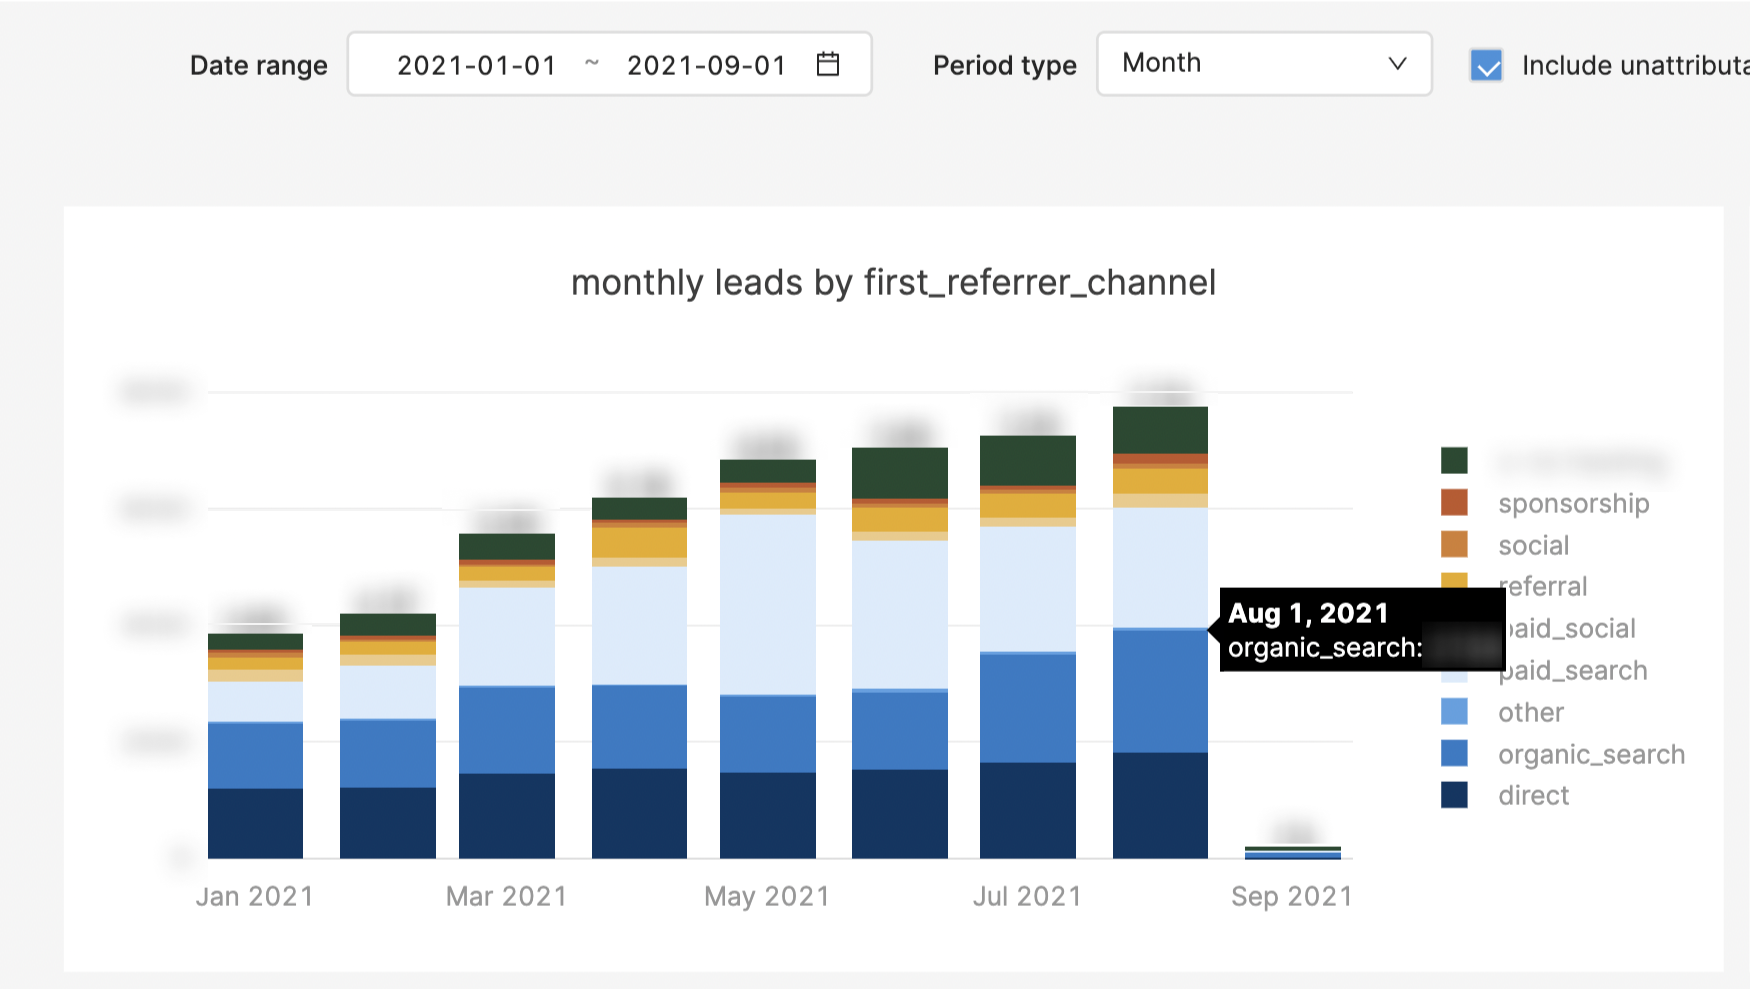 Marketing dashboard: leads by first referrer channel